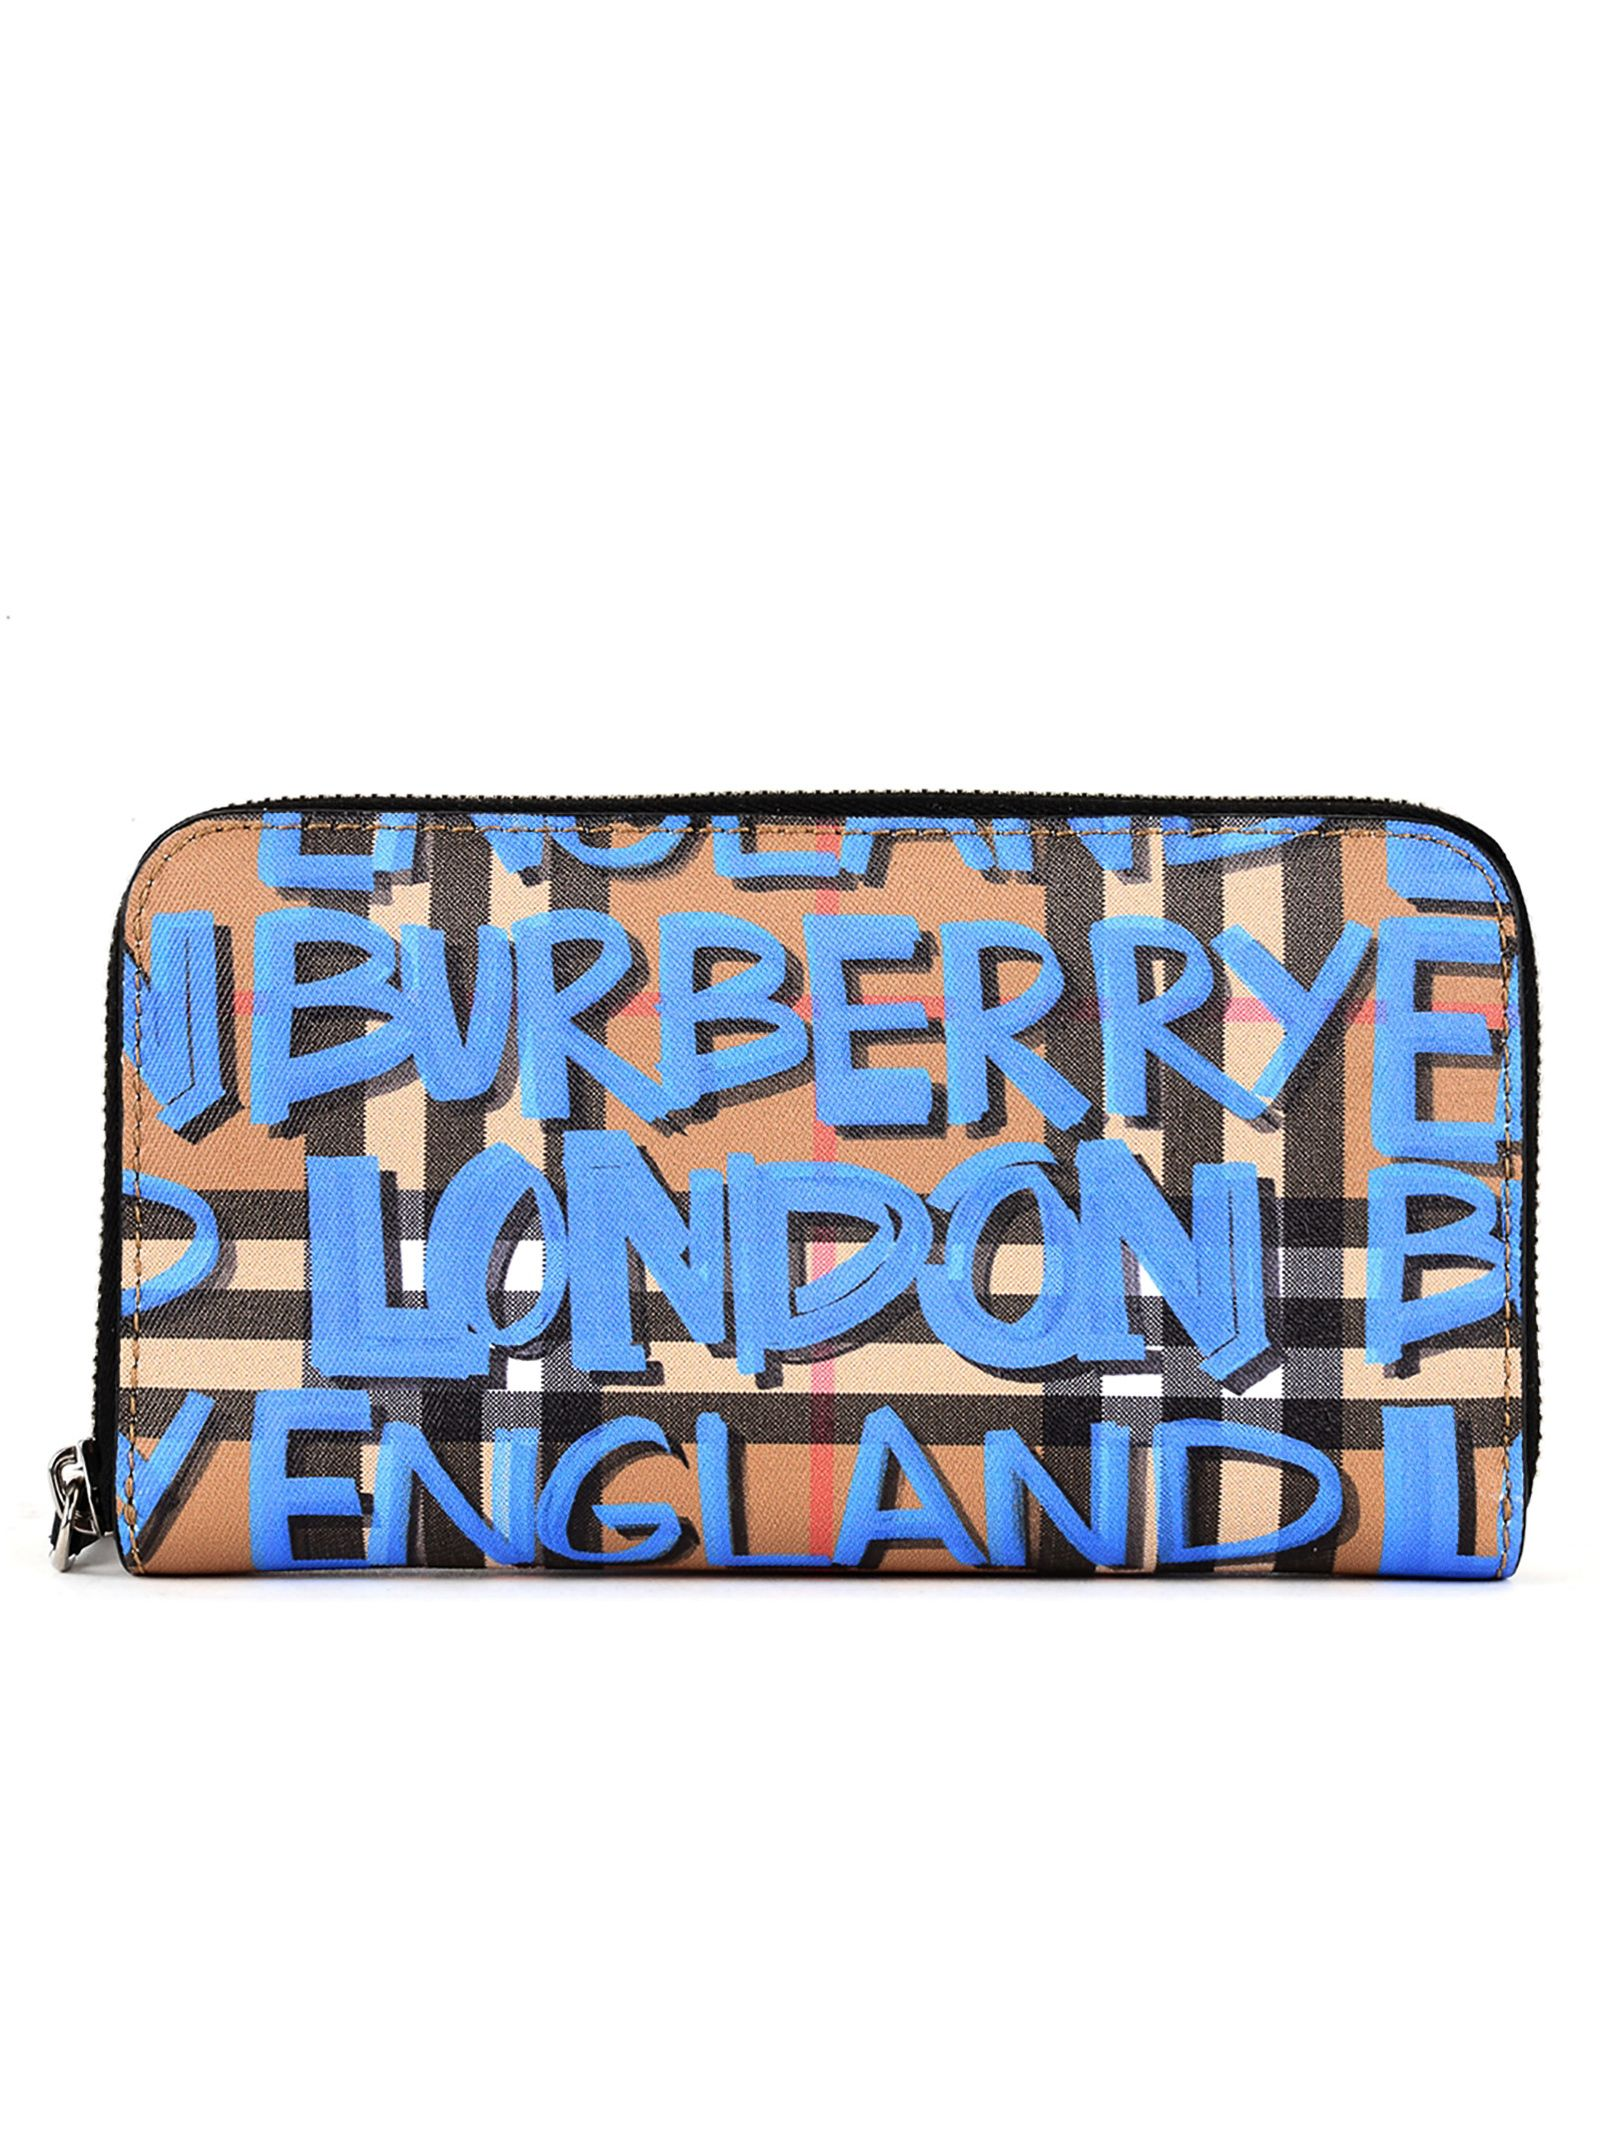 Burberry Leather Printed Wallet